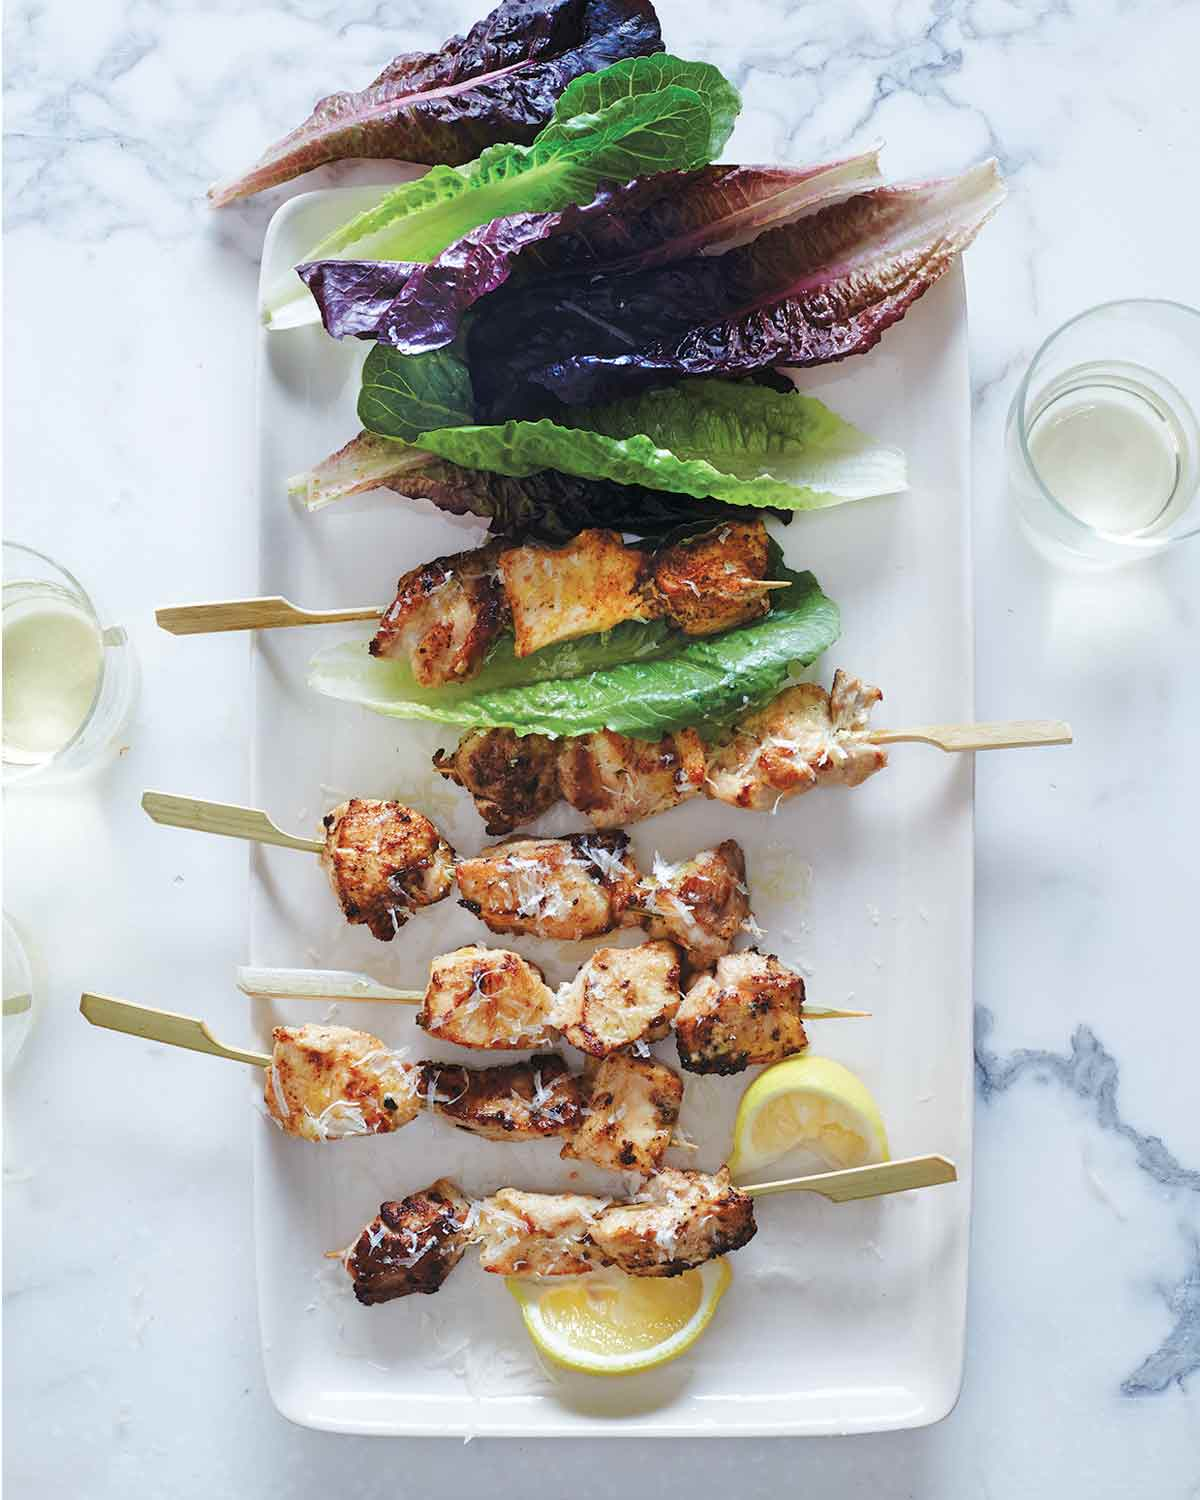 Six chicken caesar salad skewers on a white plate with leaves of red and green romaine and two lemon wedges.